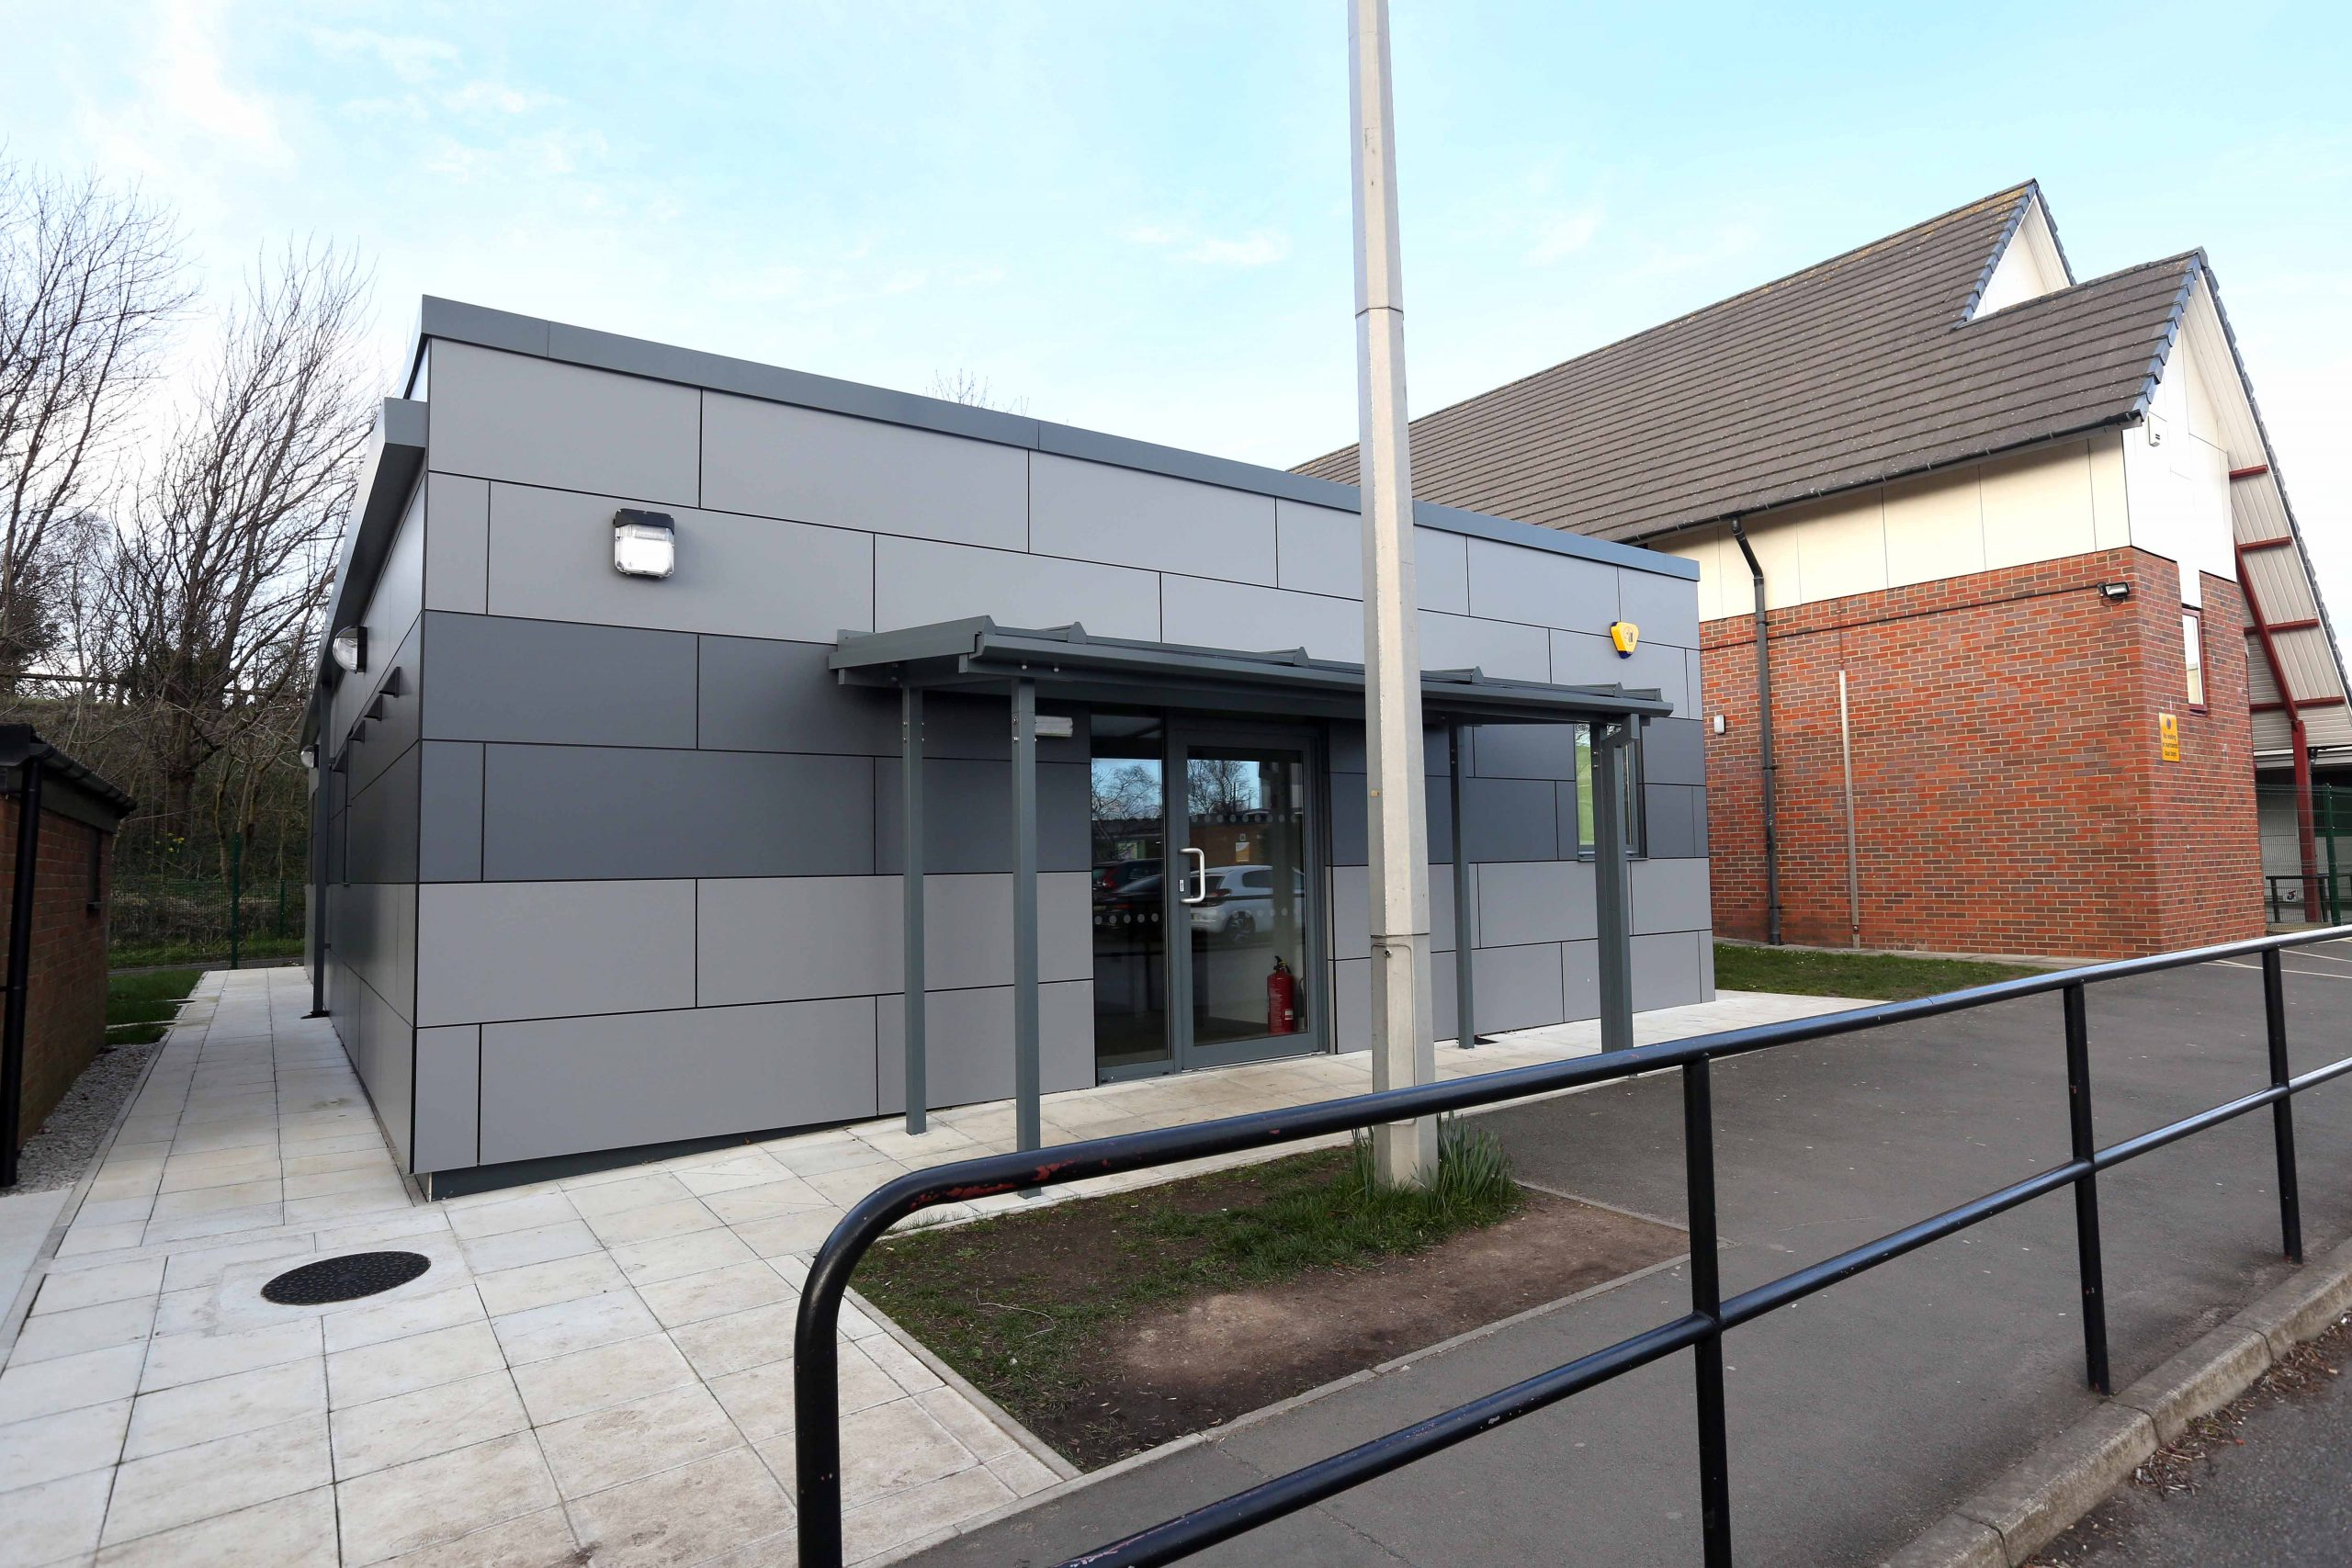 New cadet centre in Stokesley